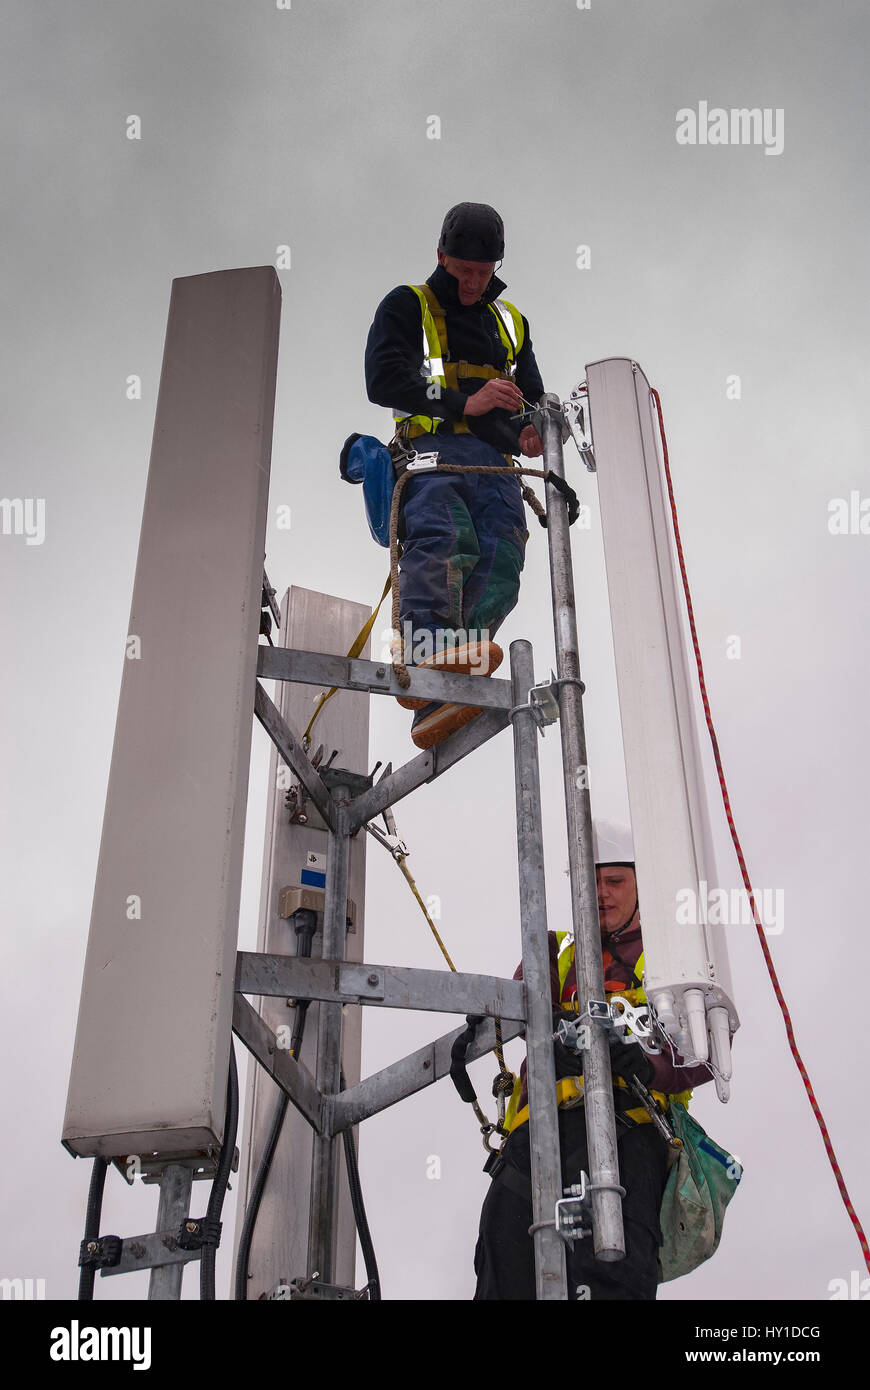 Mobile phone aerials being worked on. - Stock Image